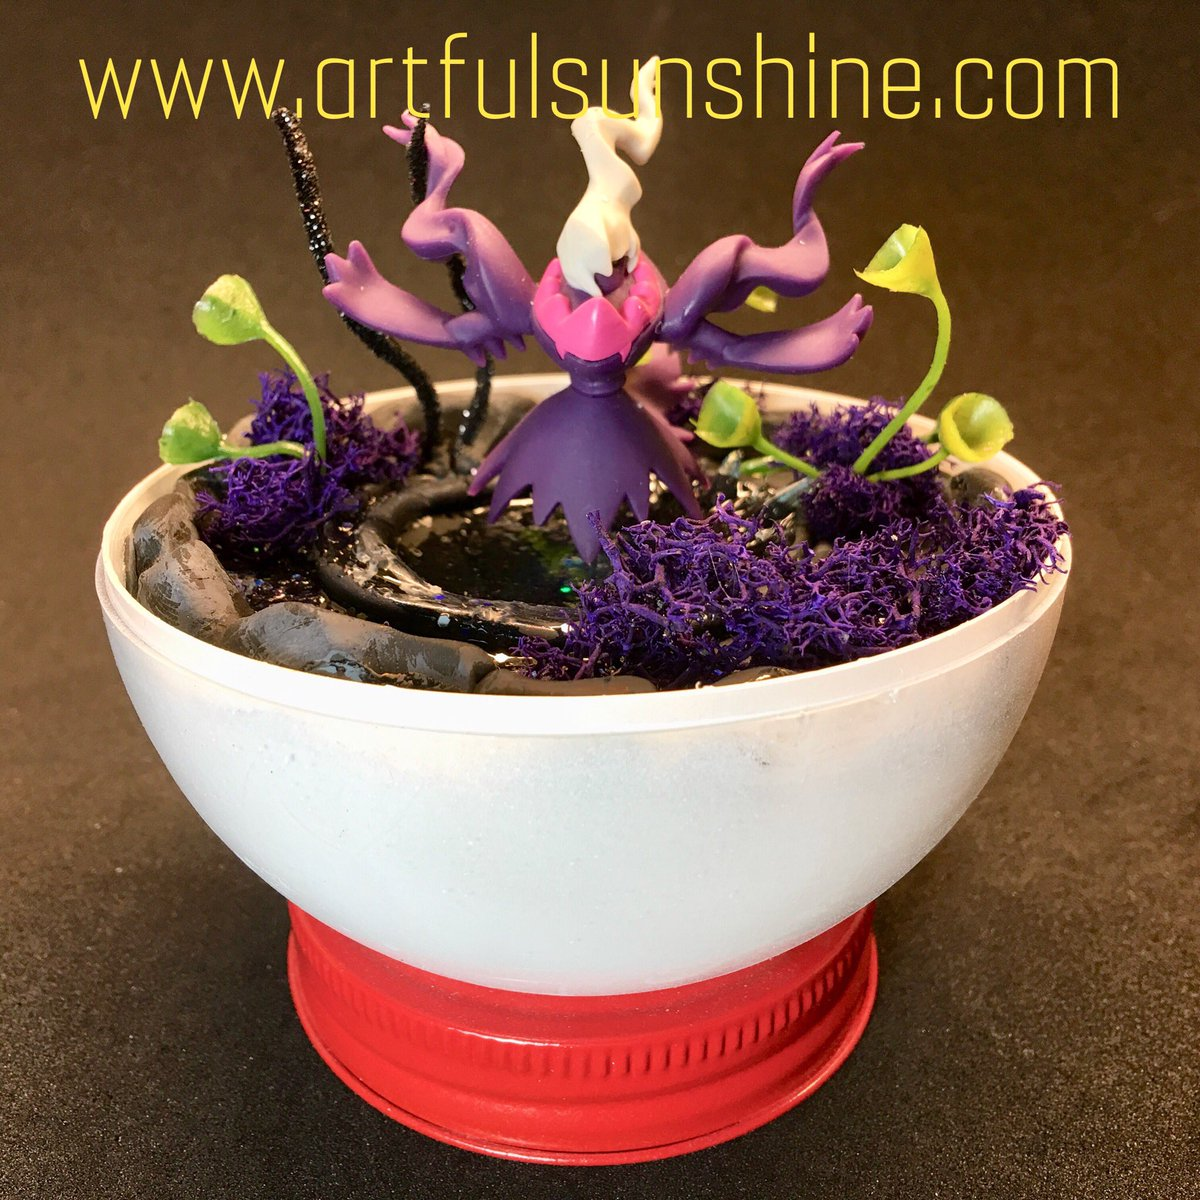 Will Petrey On Twitter Here Is Day 3 Of Pokemon Pokeball Terrarium S From 2018 That Never Got Posted Since All Of Them Are Handmade These Alola Ninetales Vulpix Darkrai Are